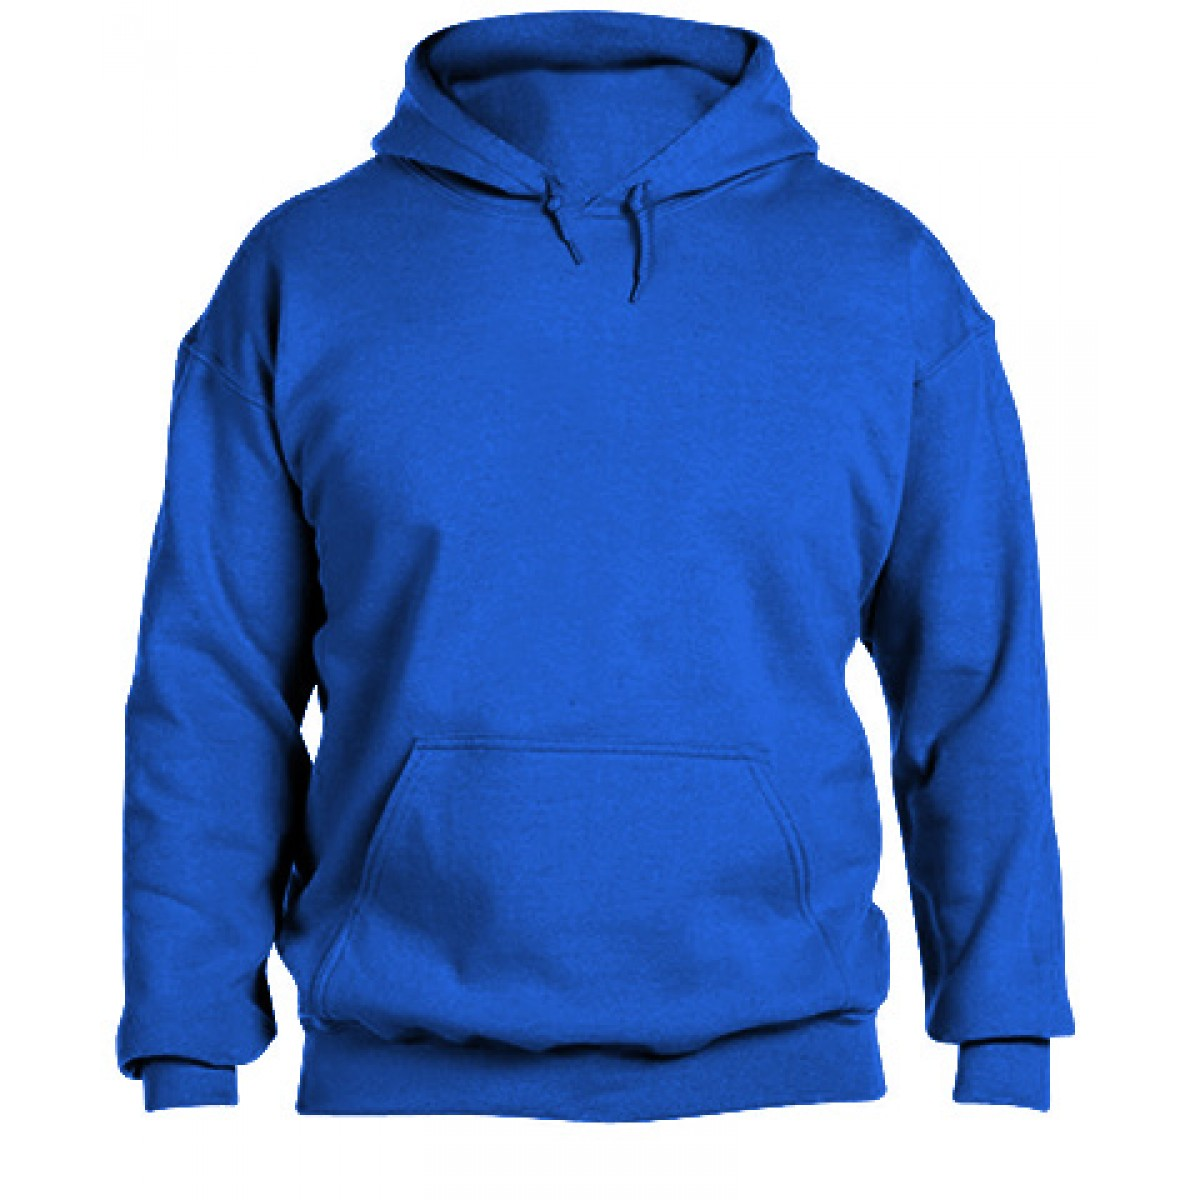 Hooded Sweatshirt 50/50 Heavy Blend-S